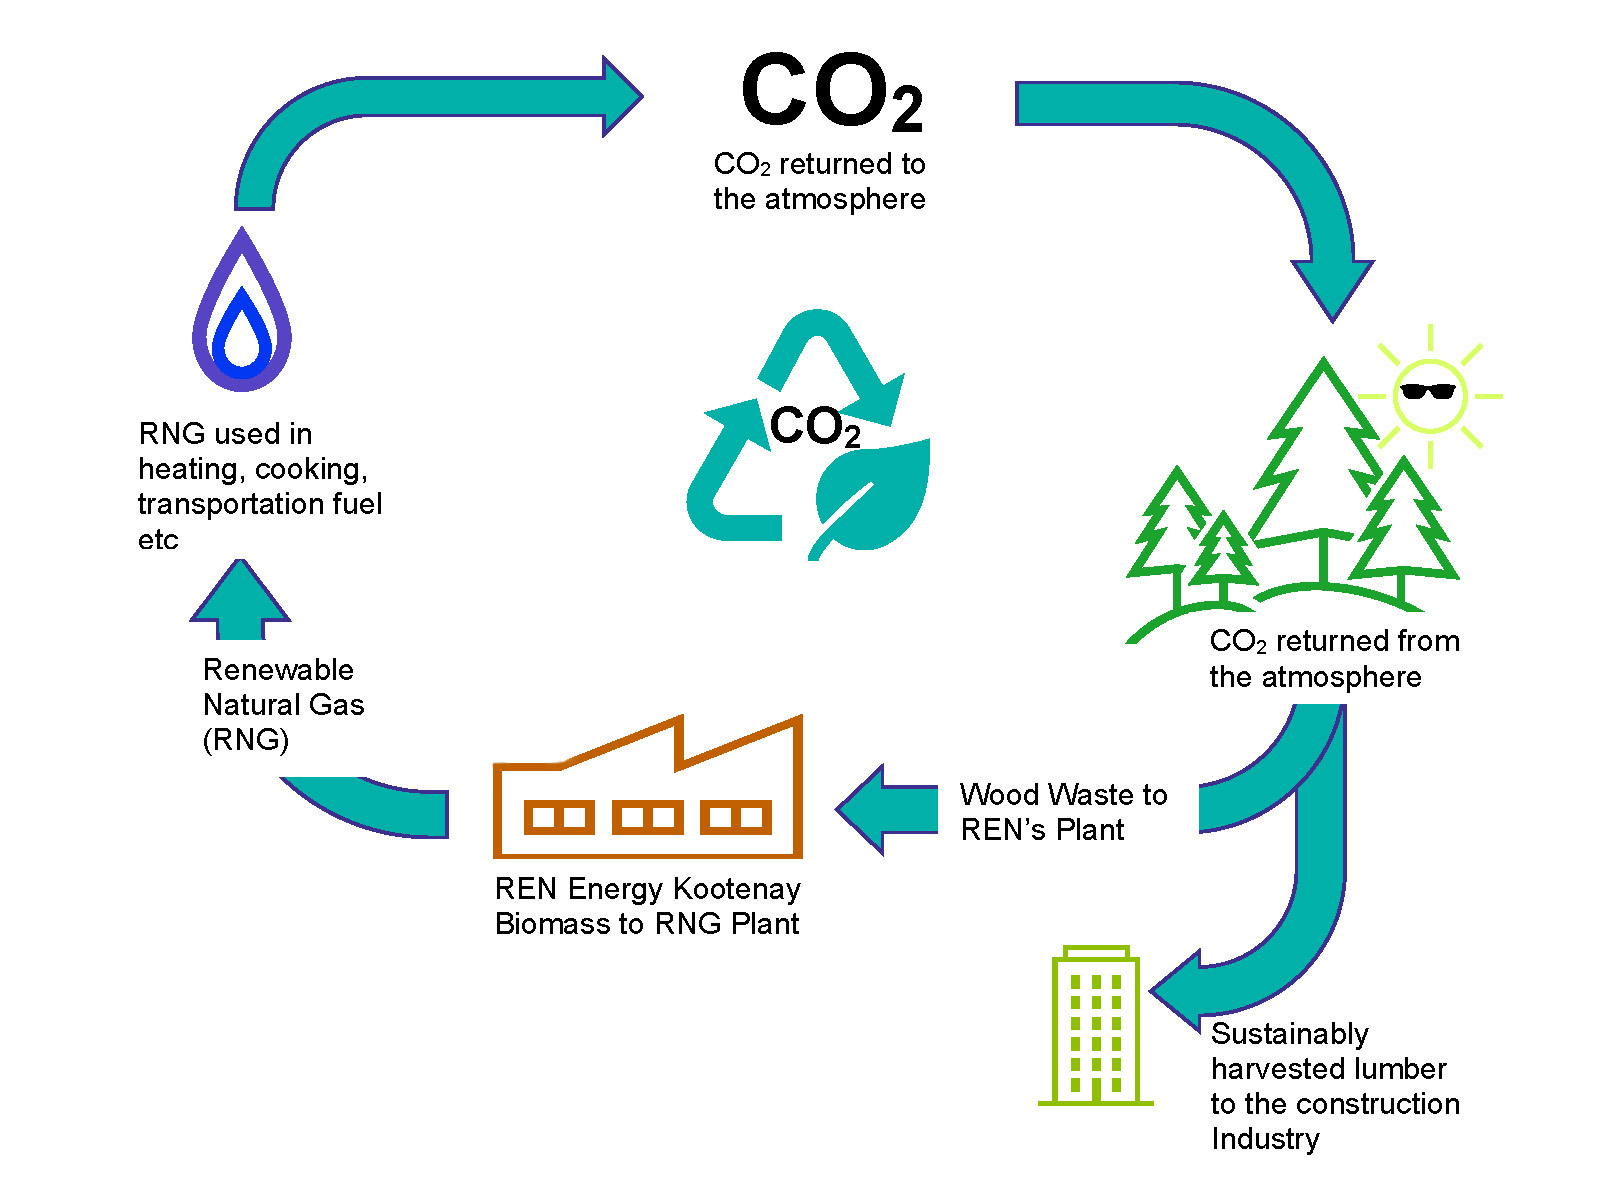 diagram of closed carbon cycle of rng plant from biomass